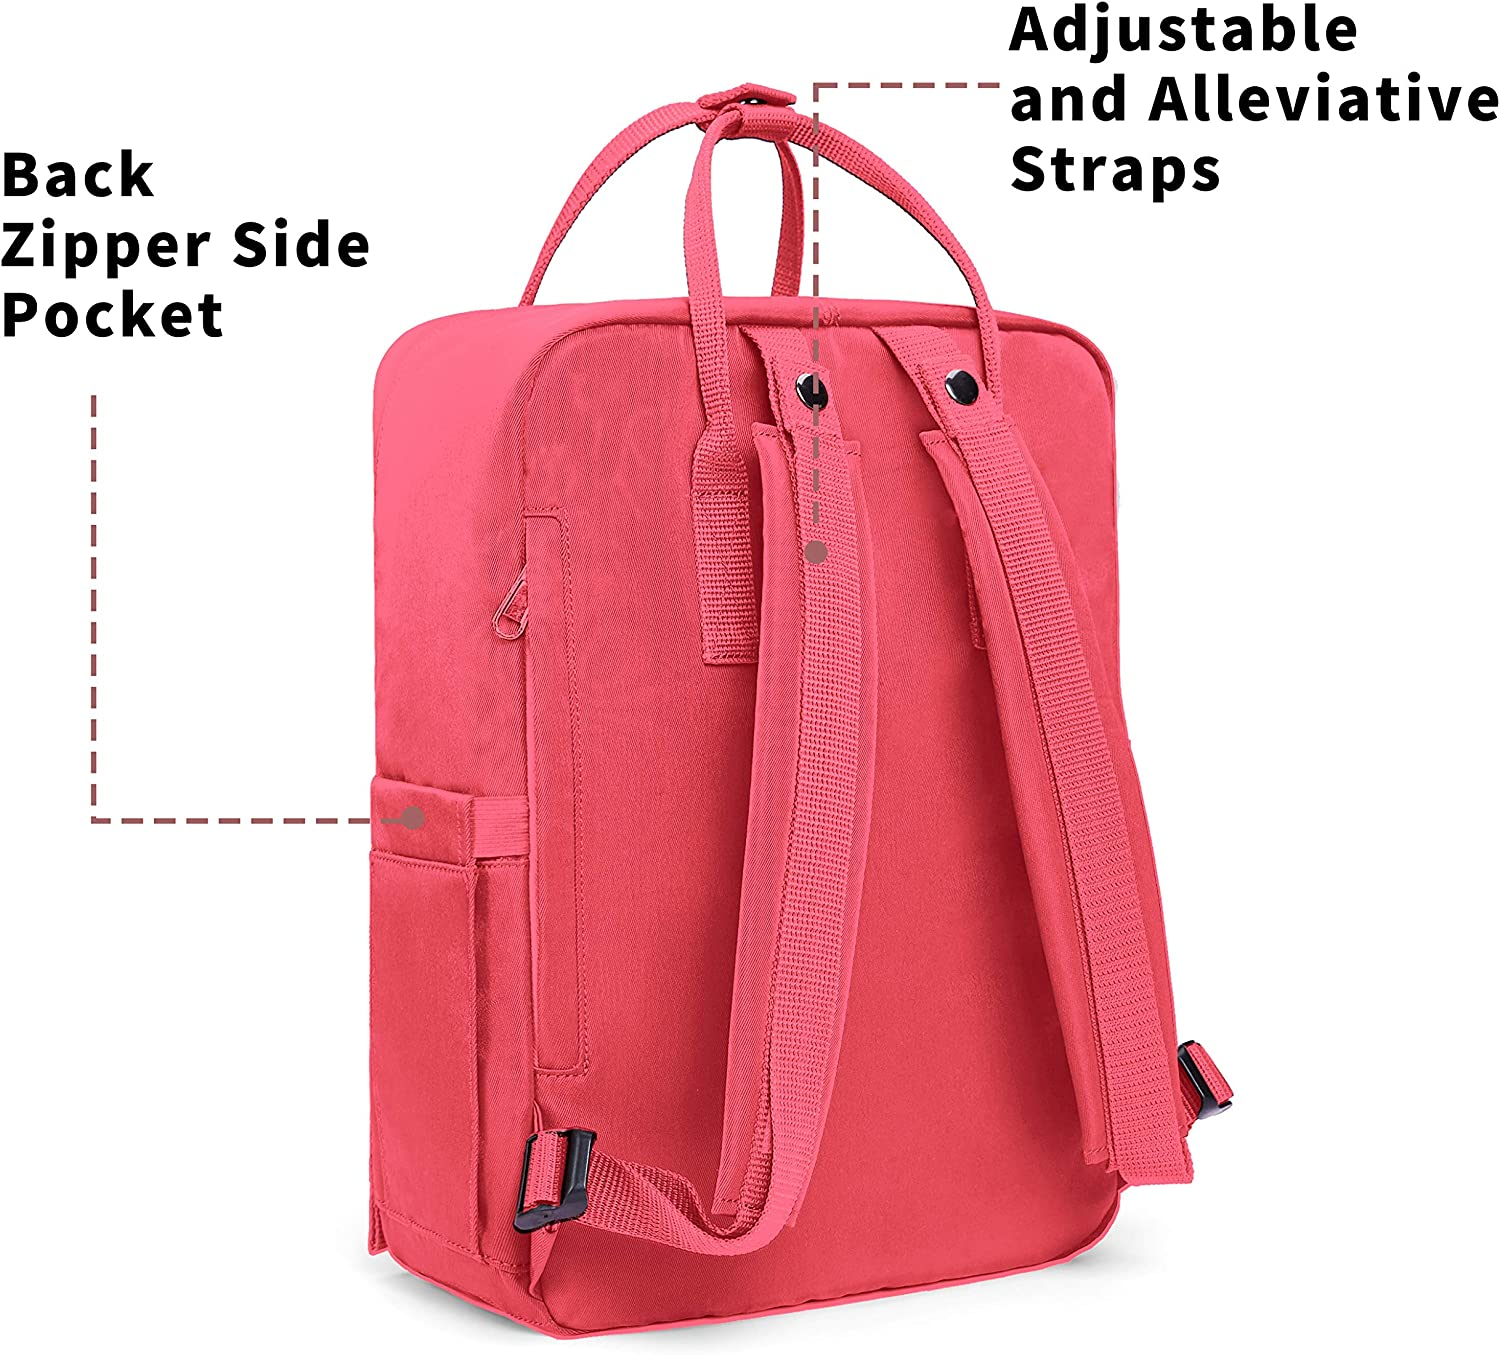 KALIDI Sac /à Dos Loisir Randonn/ée Voyages Ecole Backpack en Oxford Toile pour Ordinateur Portable Tablette Laptop MacBook 14 Pouces